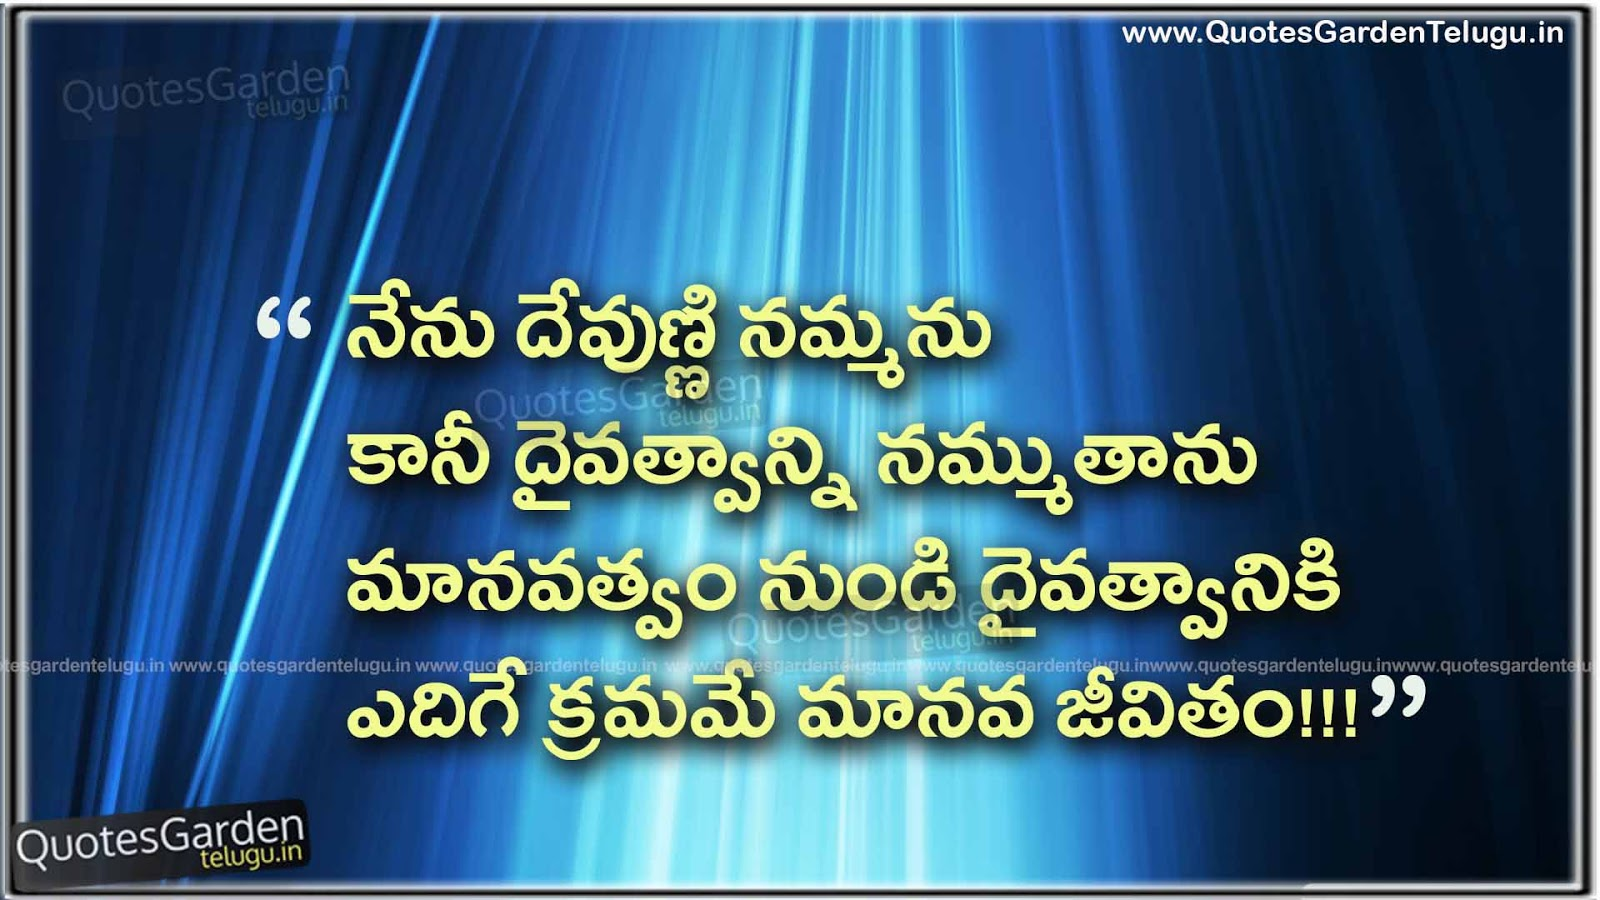 inspirational quotes in telugu about god quotes garden